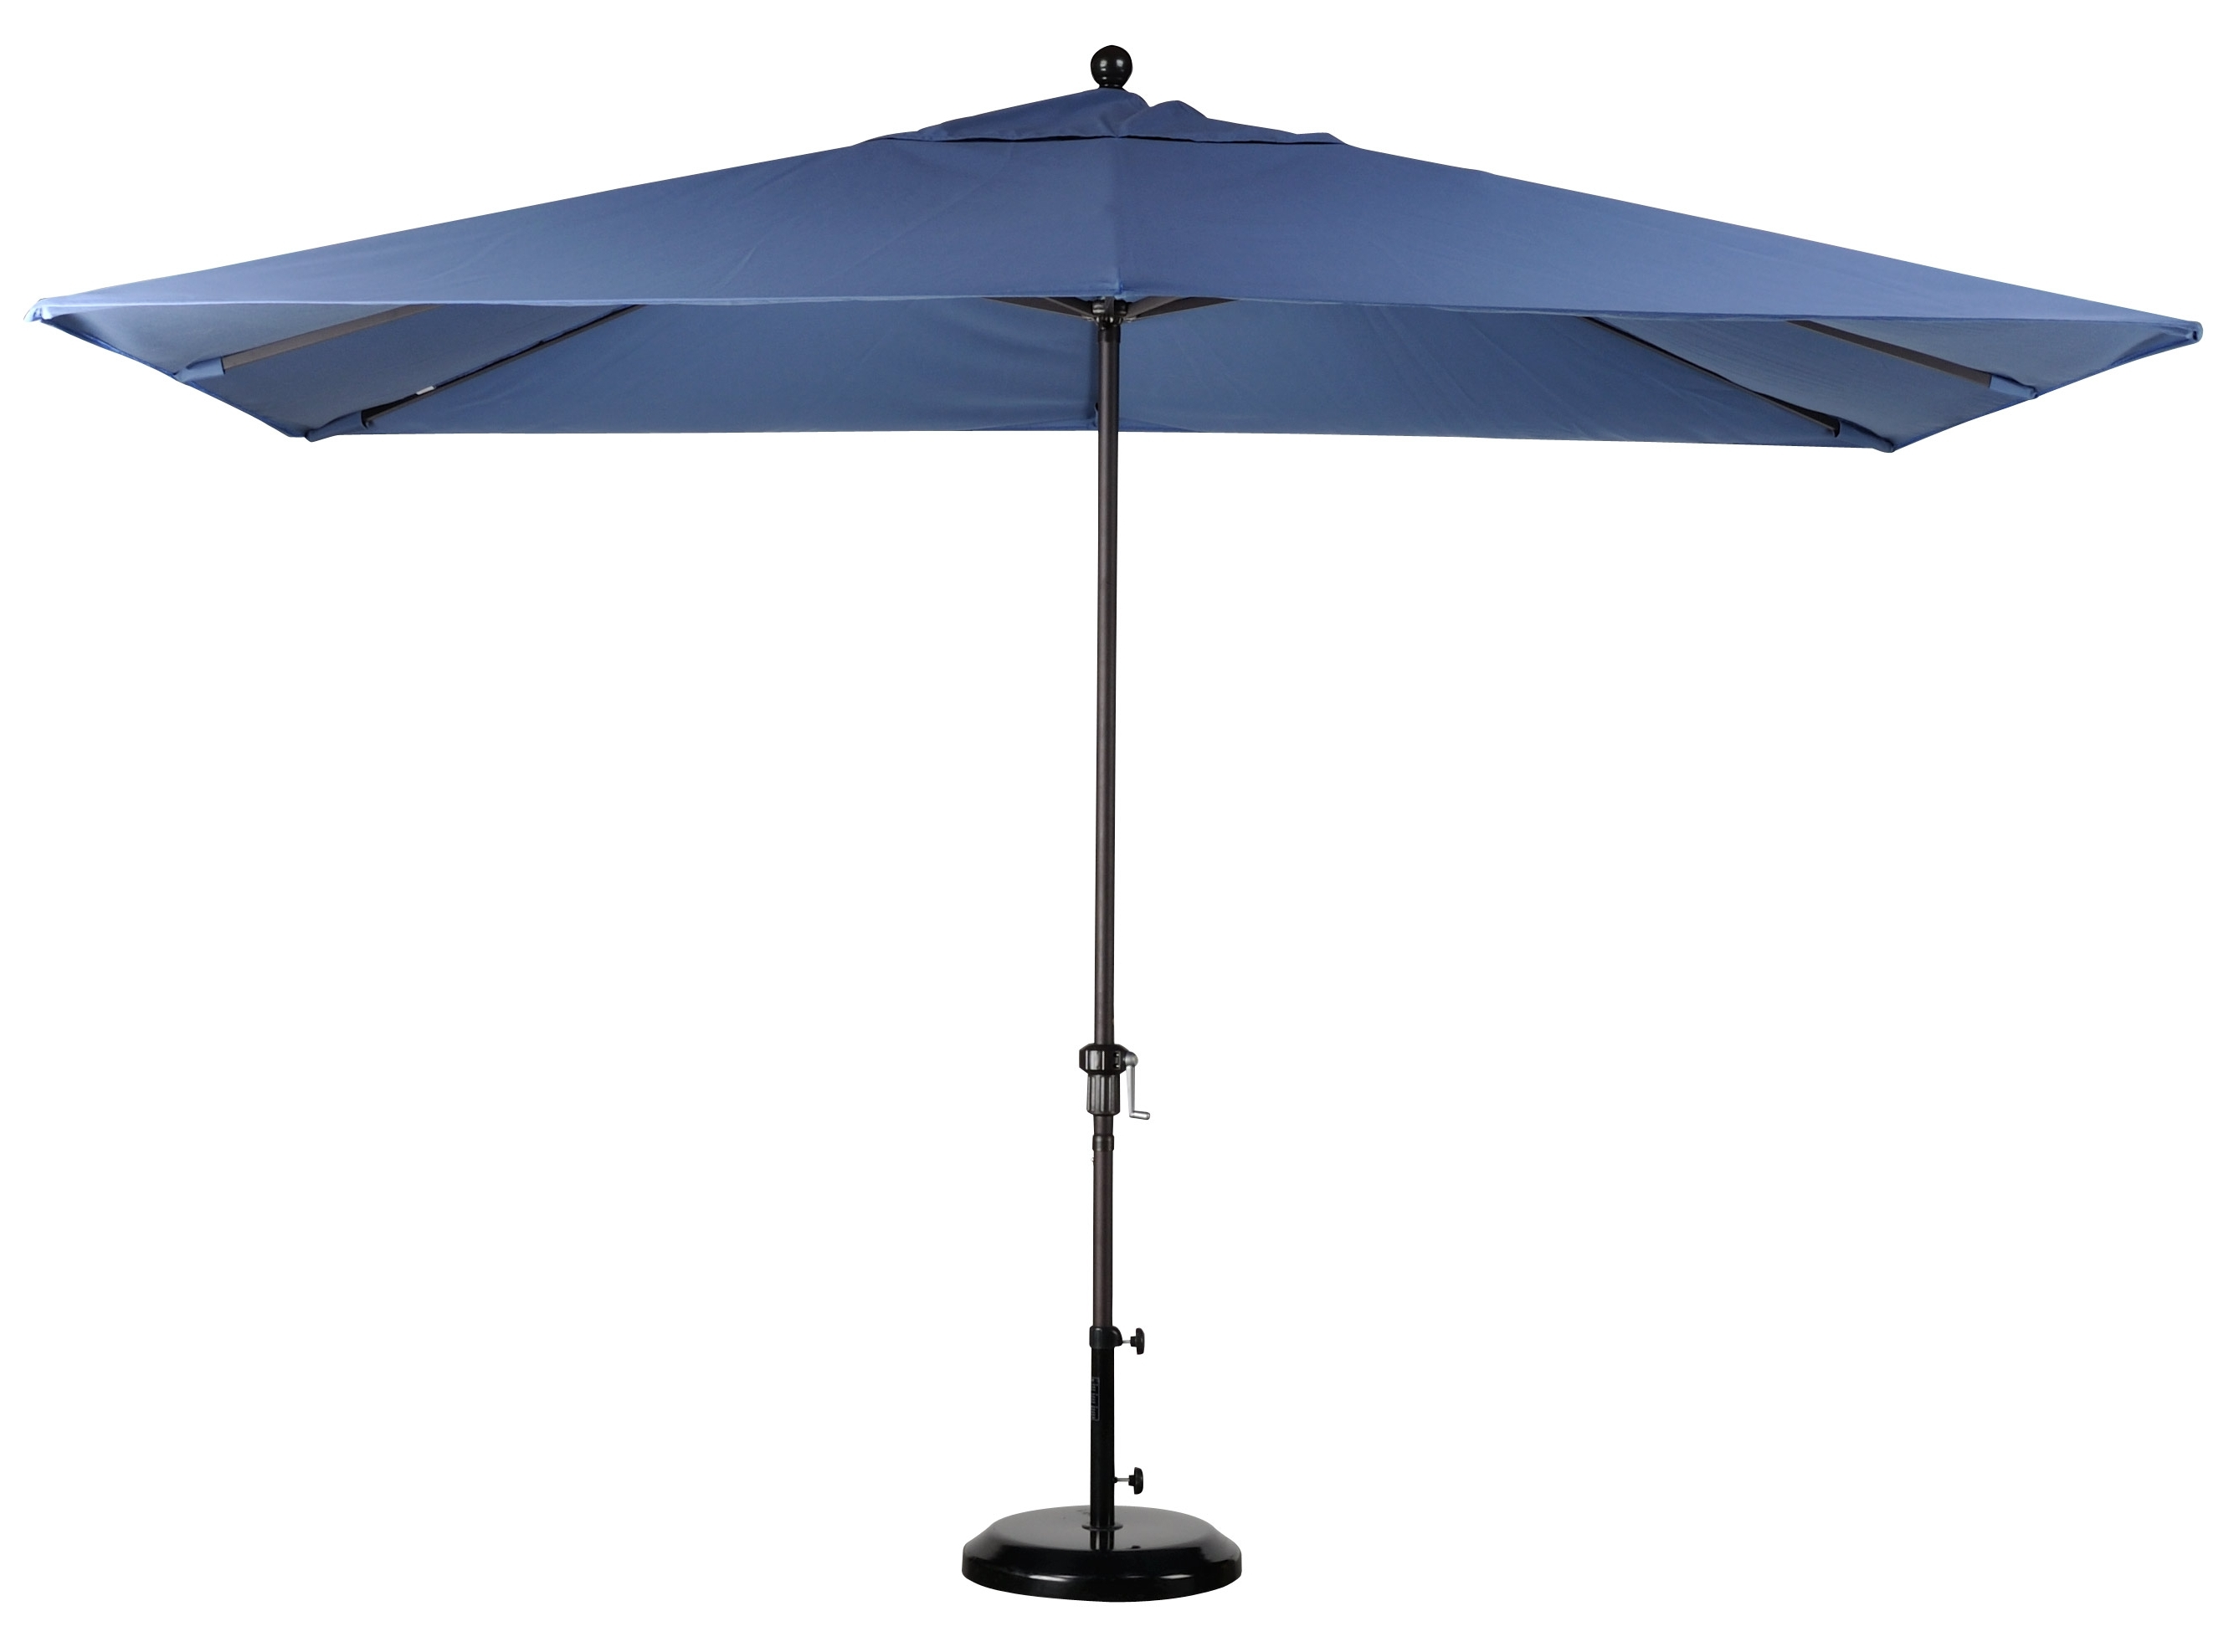 Best Selection Rectangular Market Umbrellas – Featuring Sunbrella With Regard To Widely Used Sunbrella Patio Umbrella With Lights (View 4 of 20)